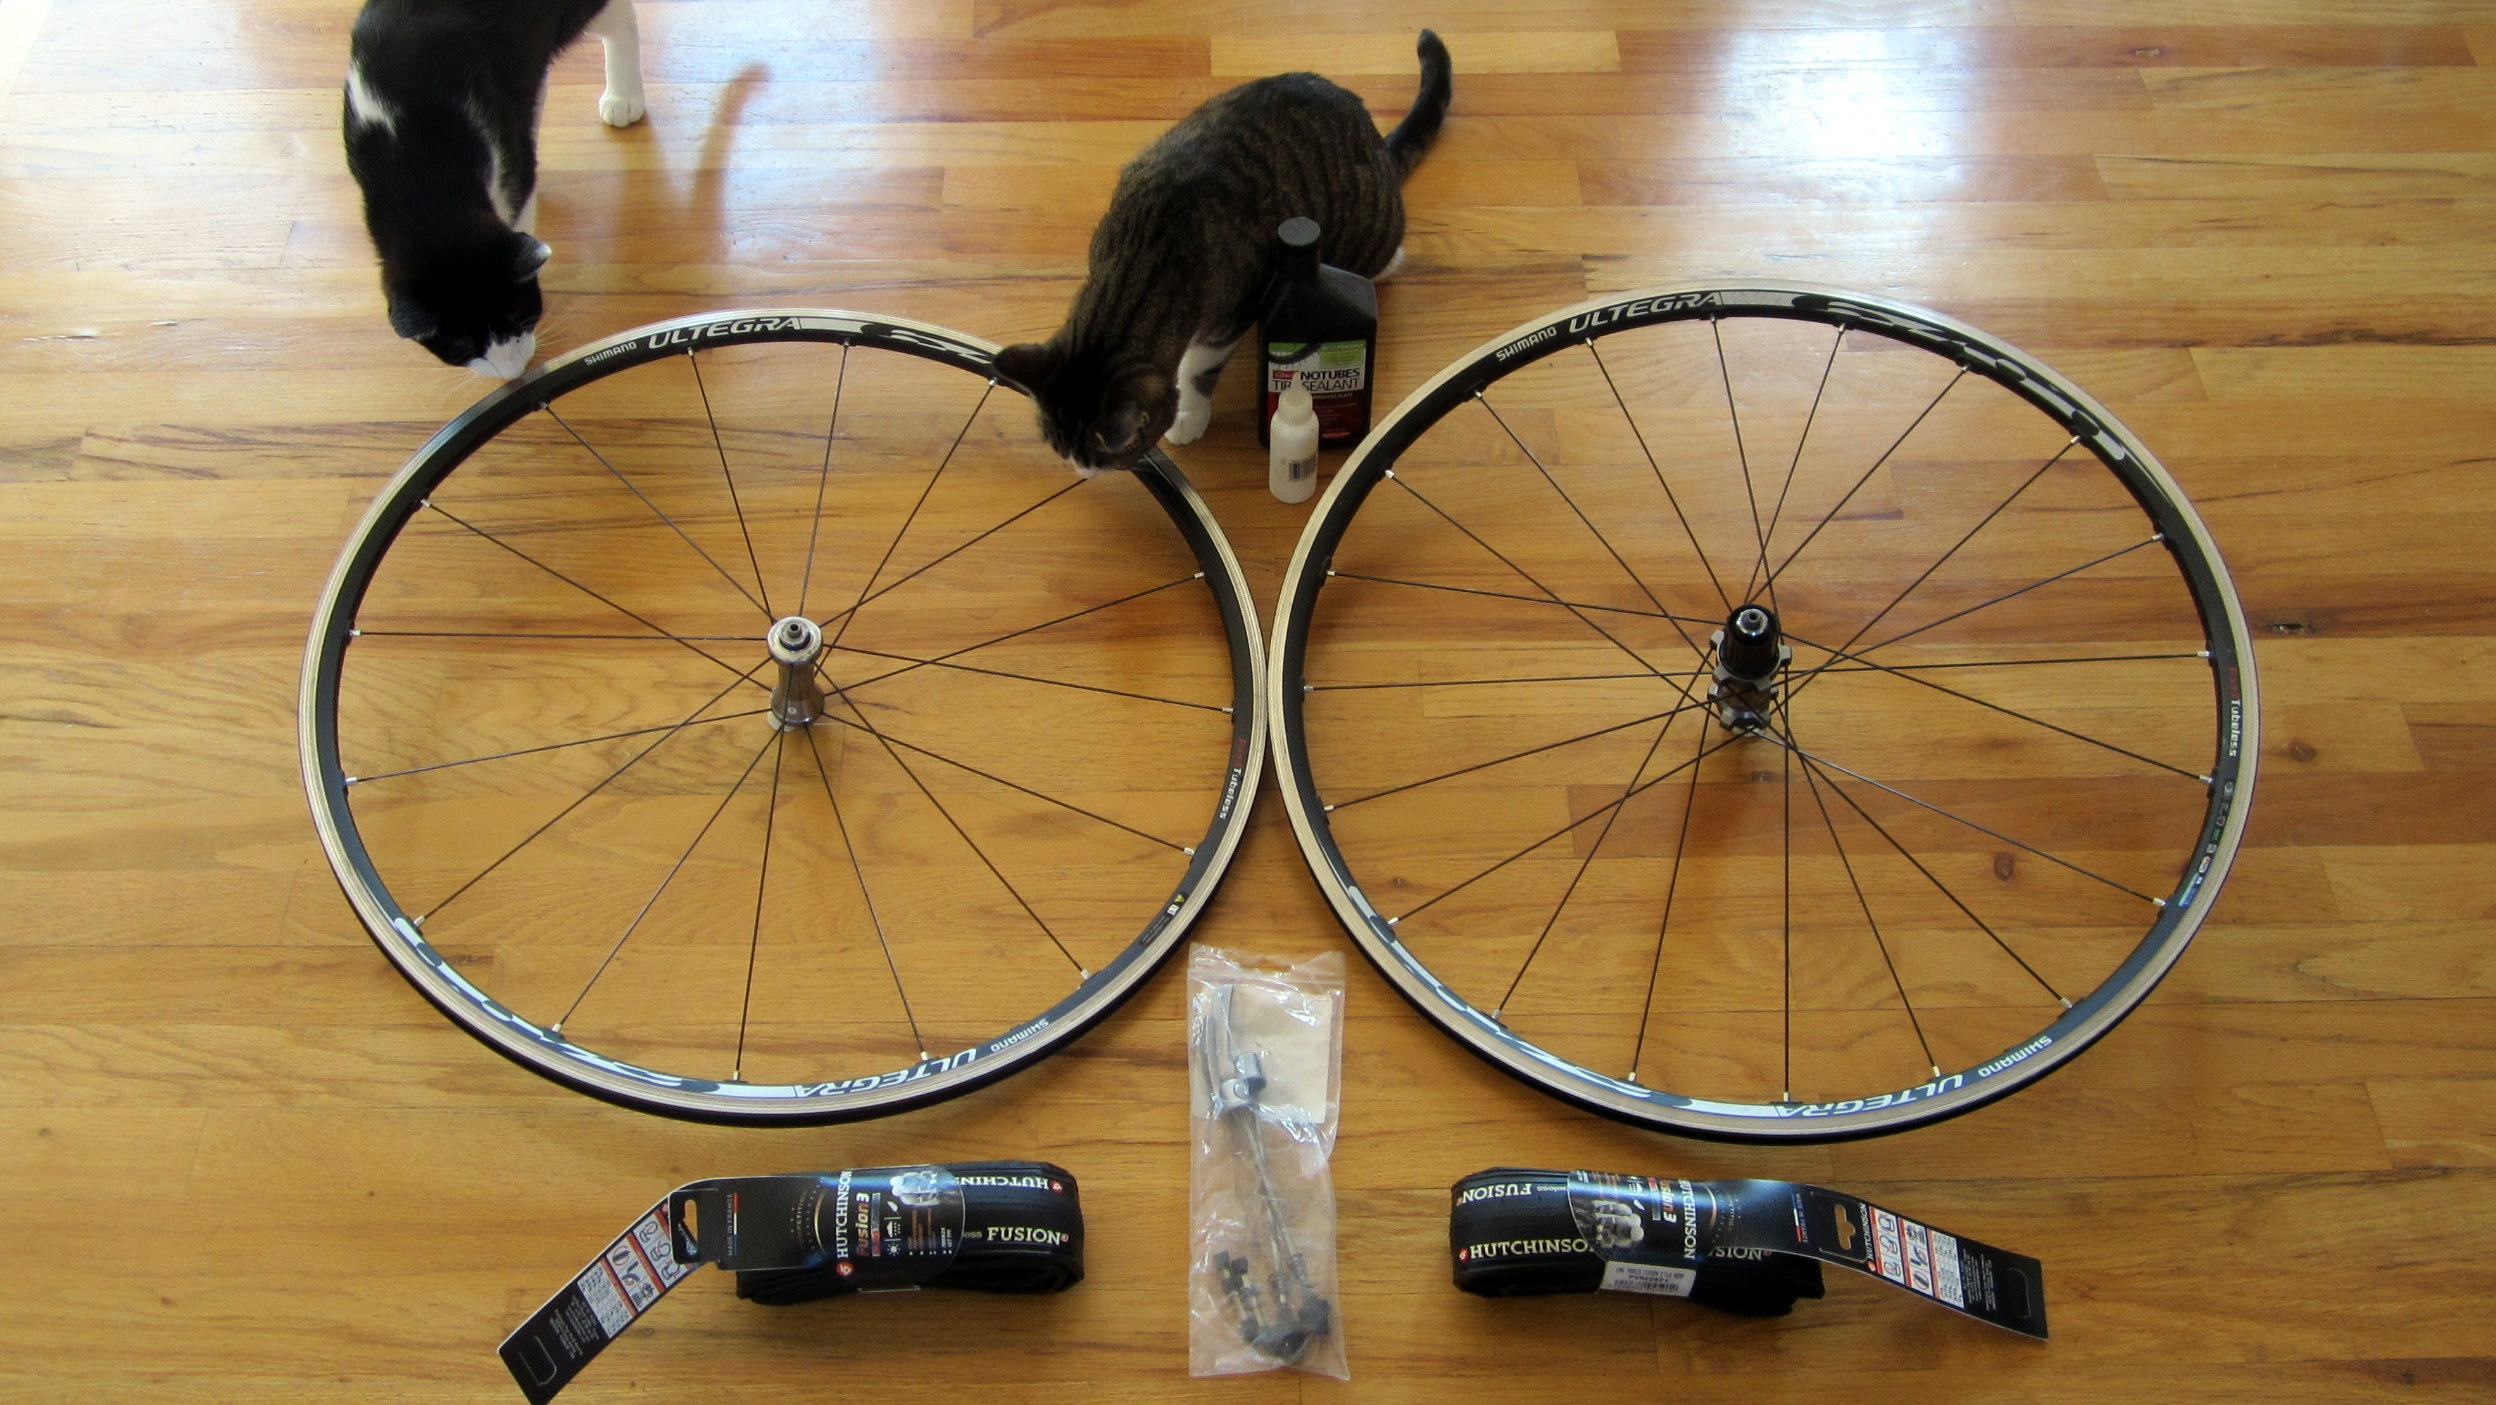 All the equipment needed to go to tubeless road tires: tubeless-ready wheels, tubeless tires (Hutchinson Fusion 3), and optional sealant (Stan's NoTubes). Curious kitties not included.